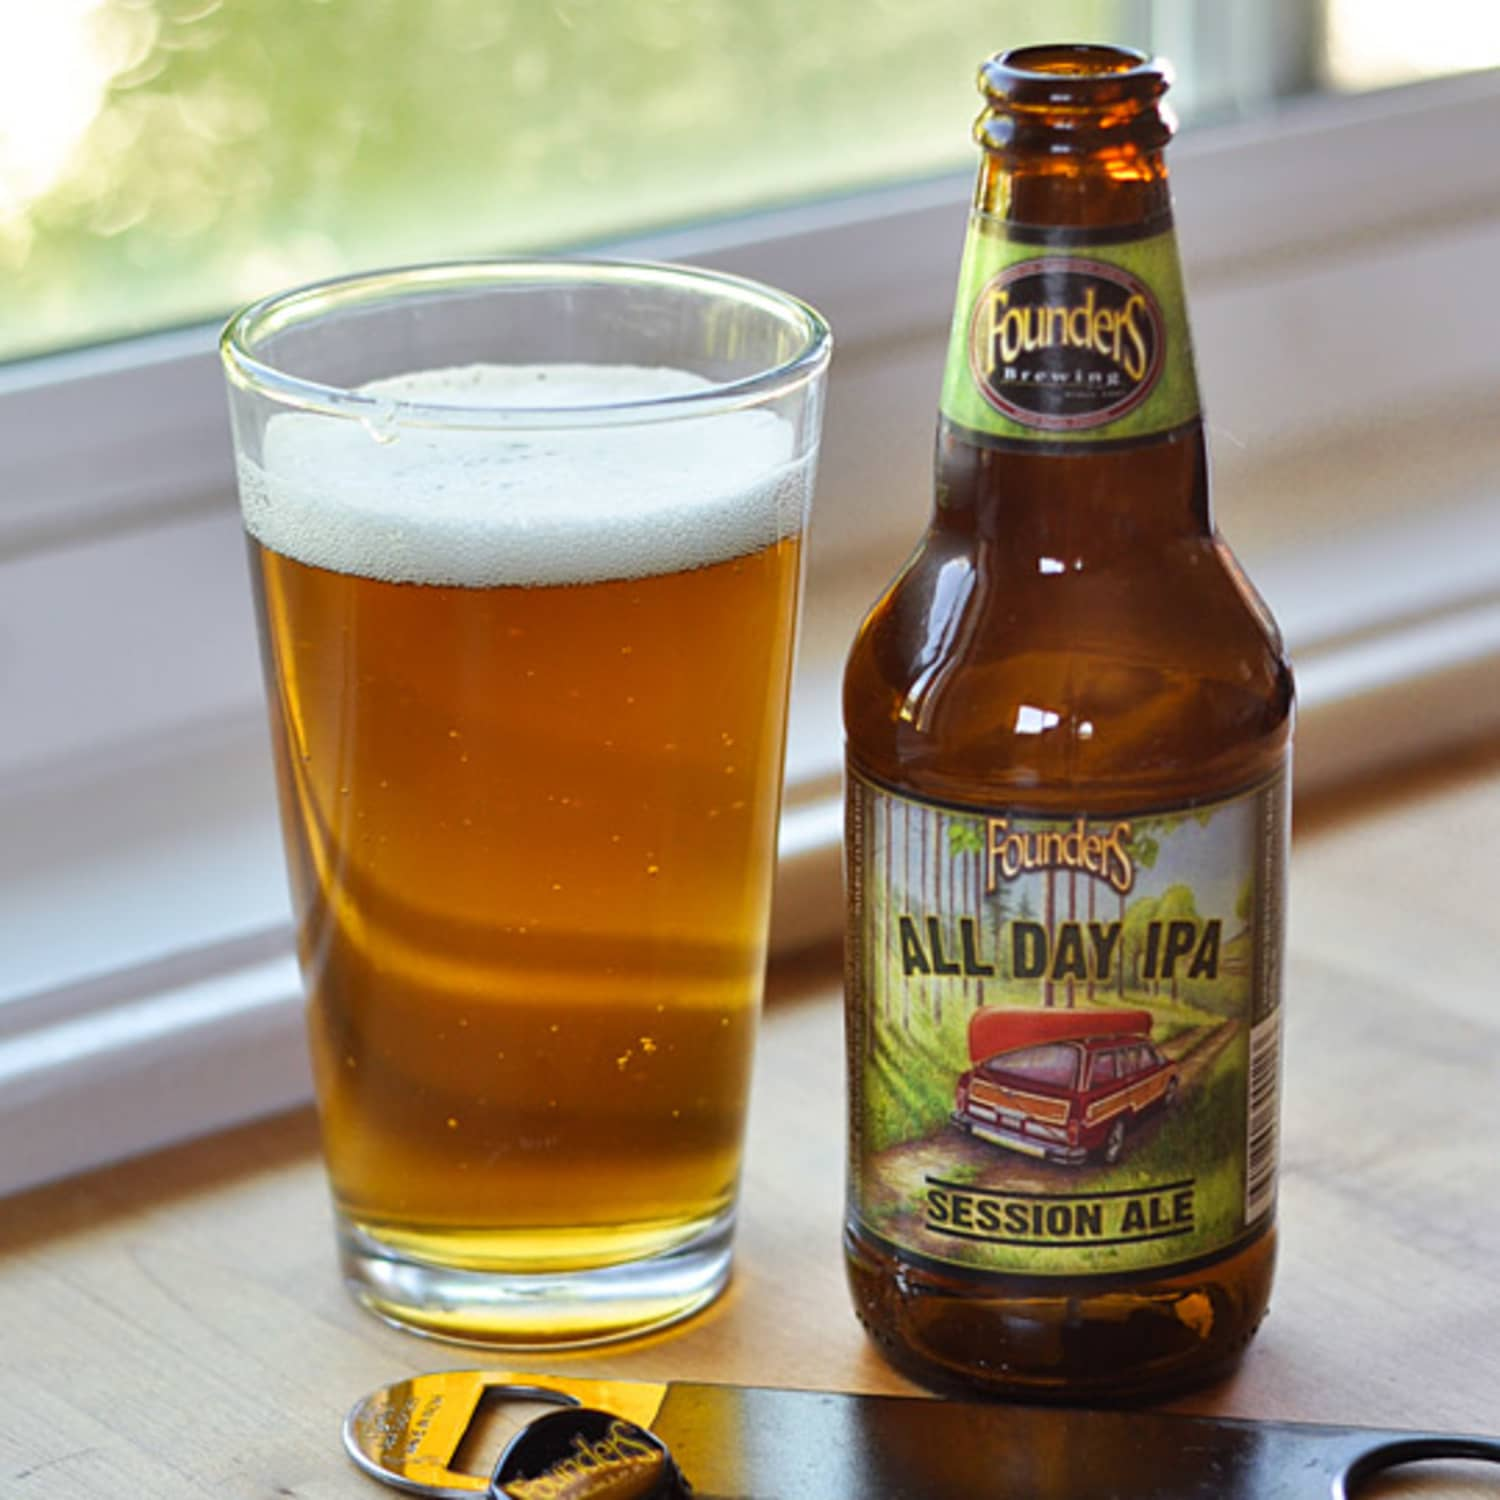 Beer Review All Day Ipa Session Ale From Founders Brewing Kitchn